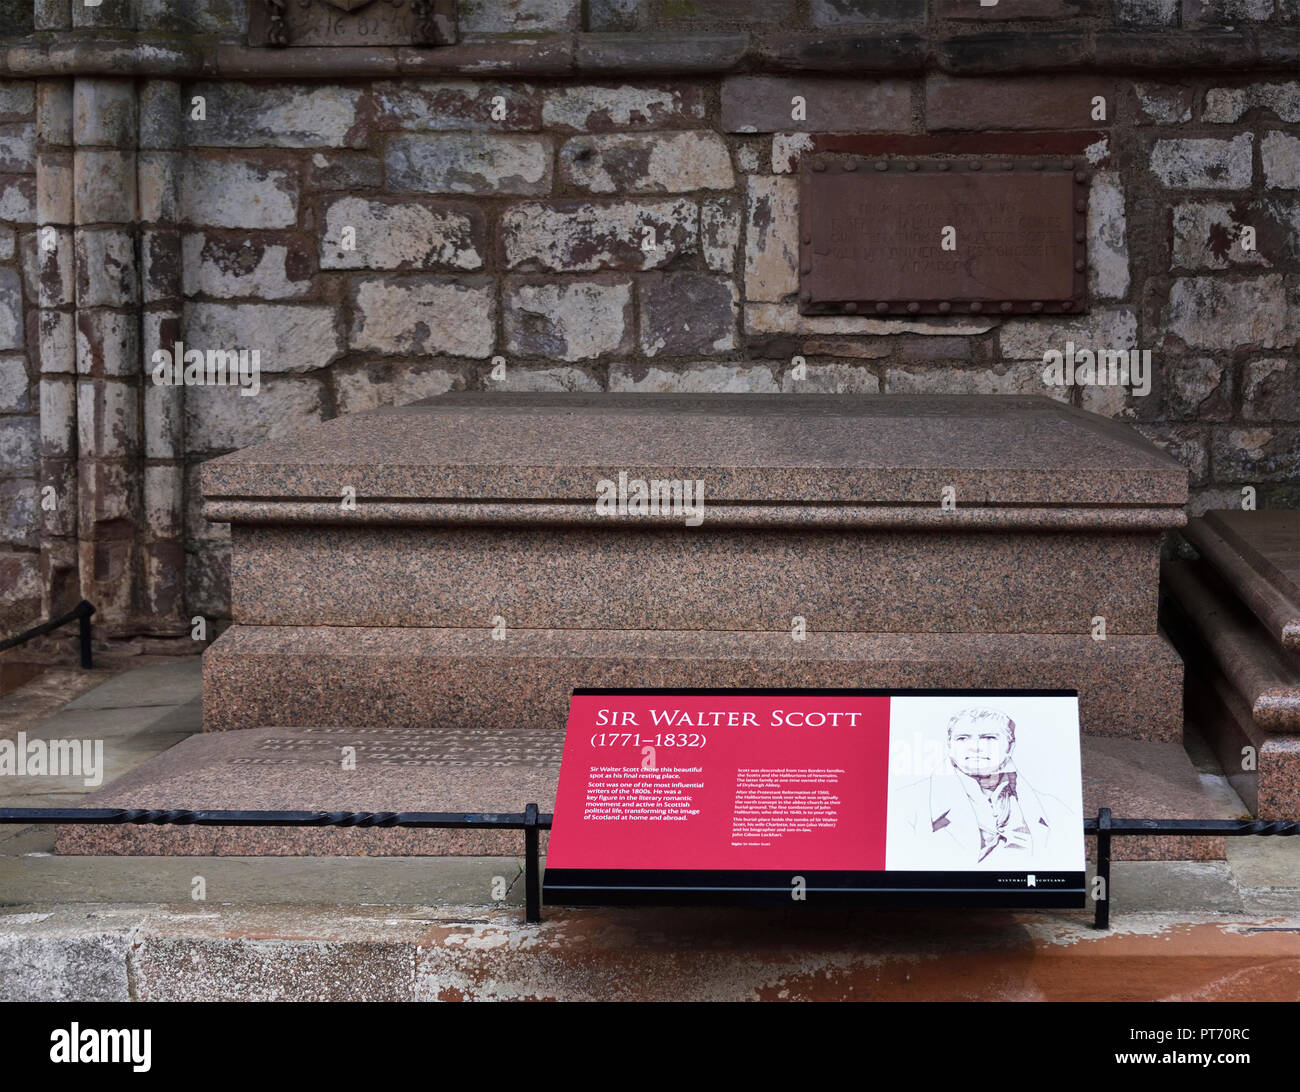 grave-of-sir-walter-scott-dryburgh-abbey-dryburgh-stboswells-roxburghshire-scottish-borders-scotland-united-kingdom-europe-PT70RC.jpg